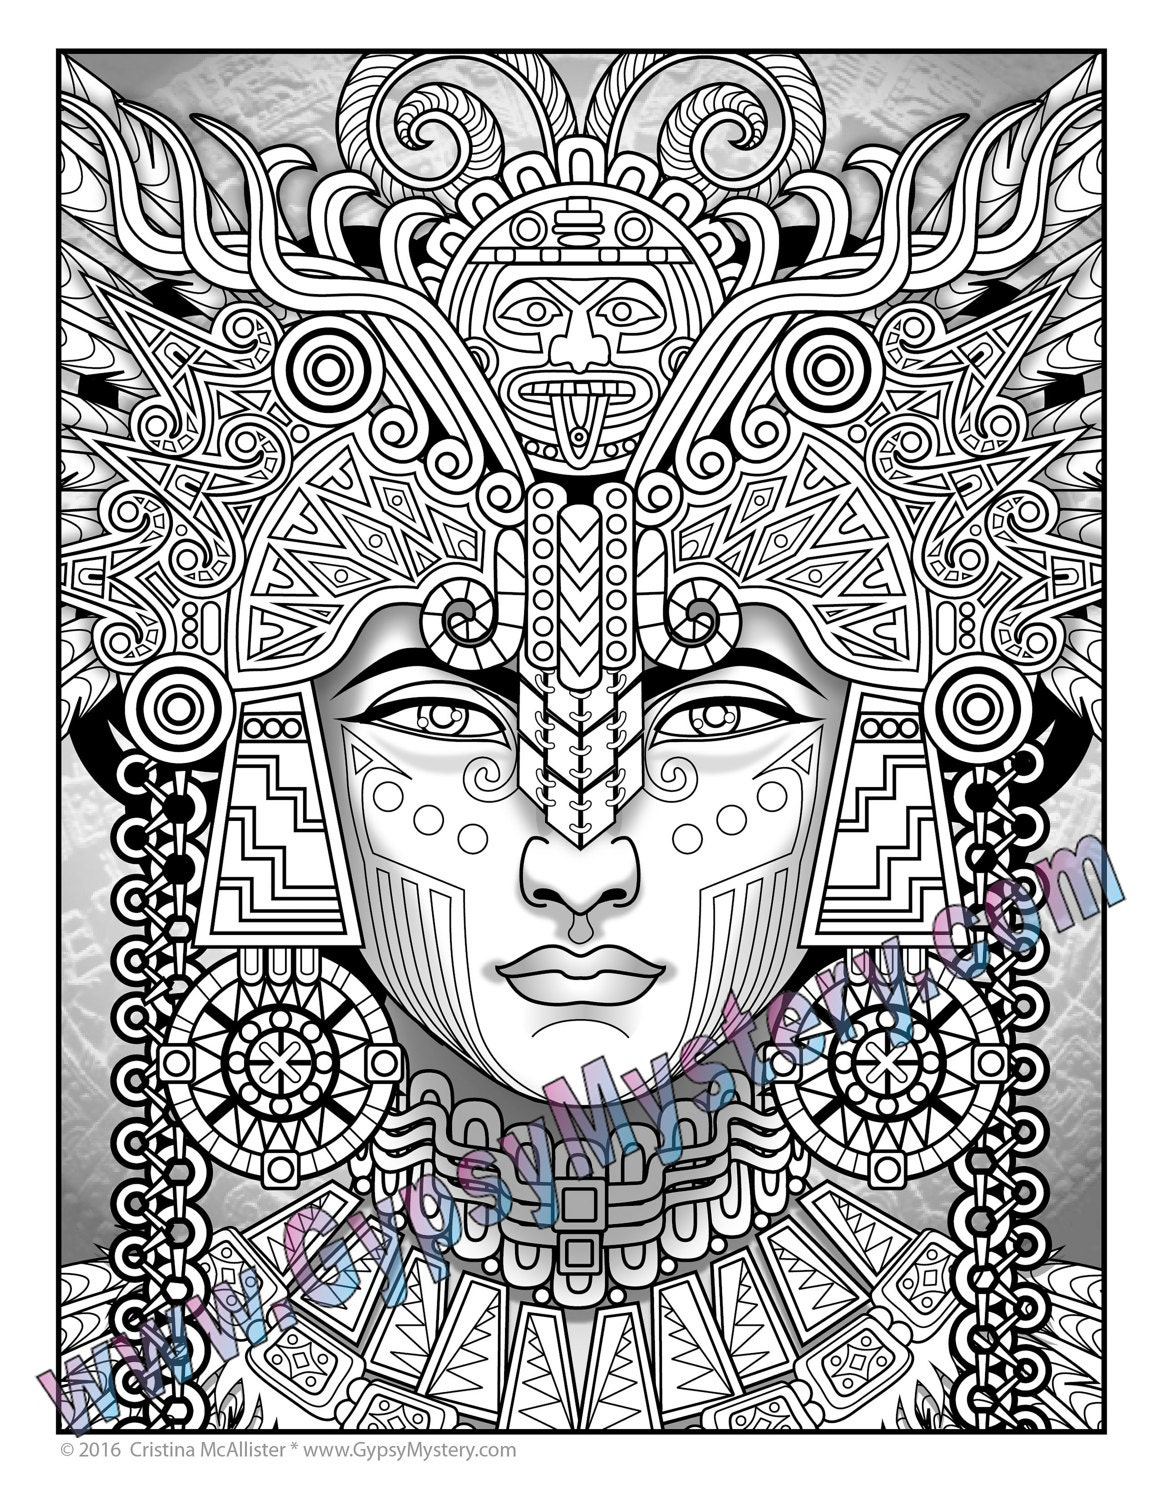 mayan coloring pages Single Coloring Page Mayan Astrologer from the Magical | Etsy mayan coloring pages